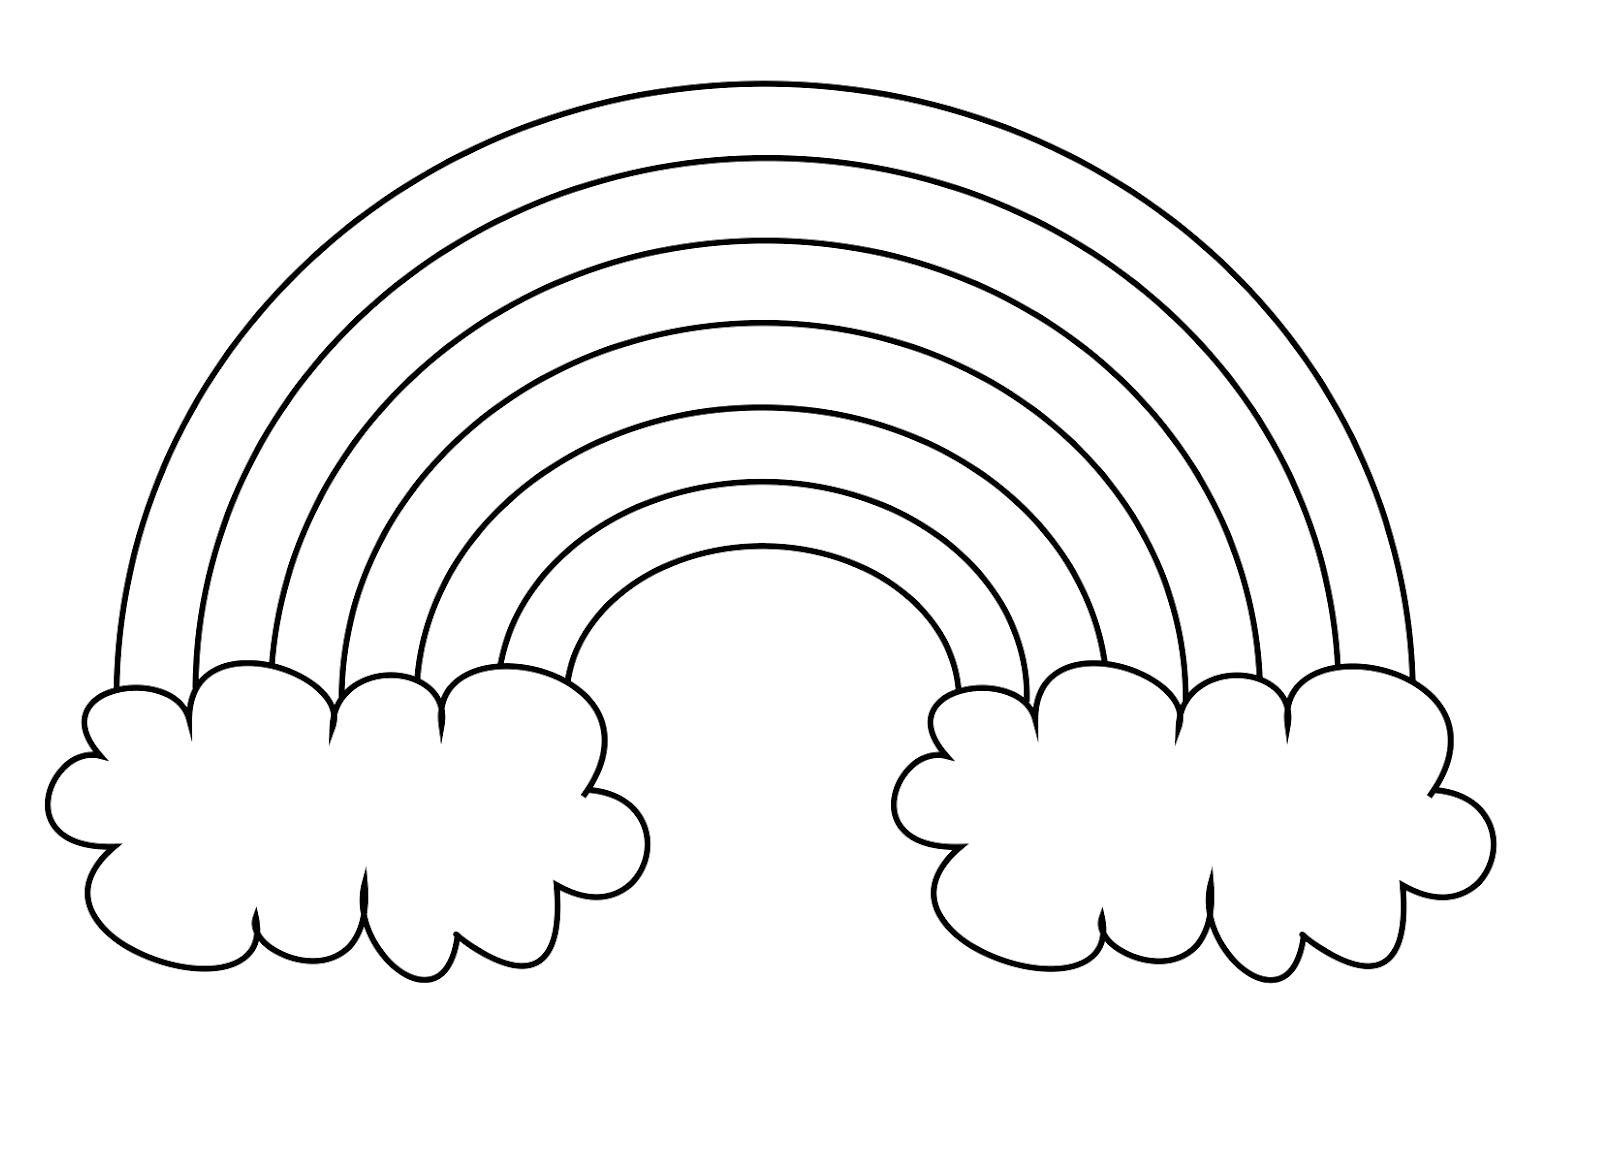 Rainbow Colouring Pages Google Search Rainbow Pages School Coloring Pages Preschool Coloring Pages